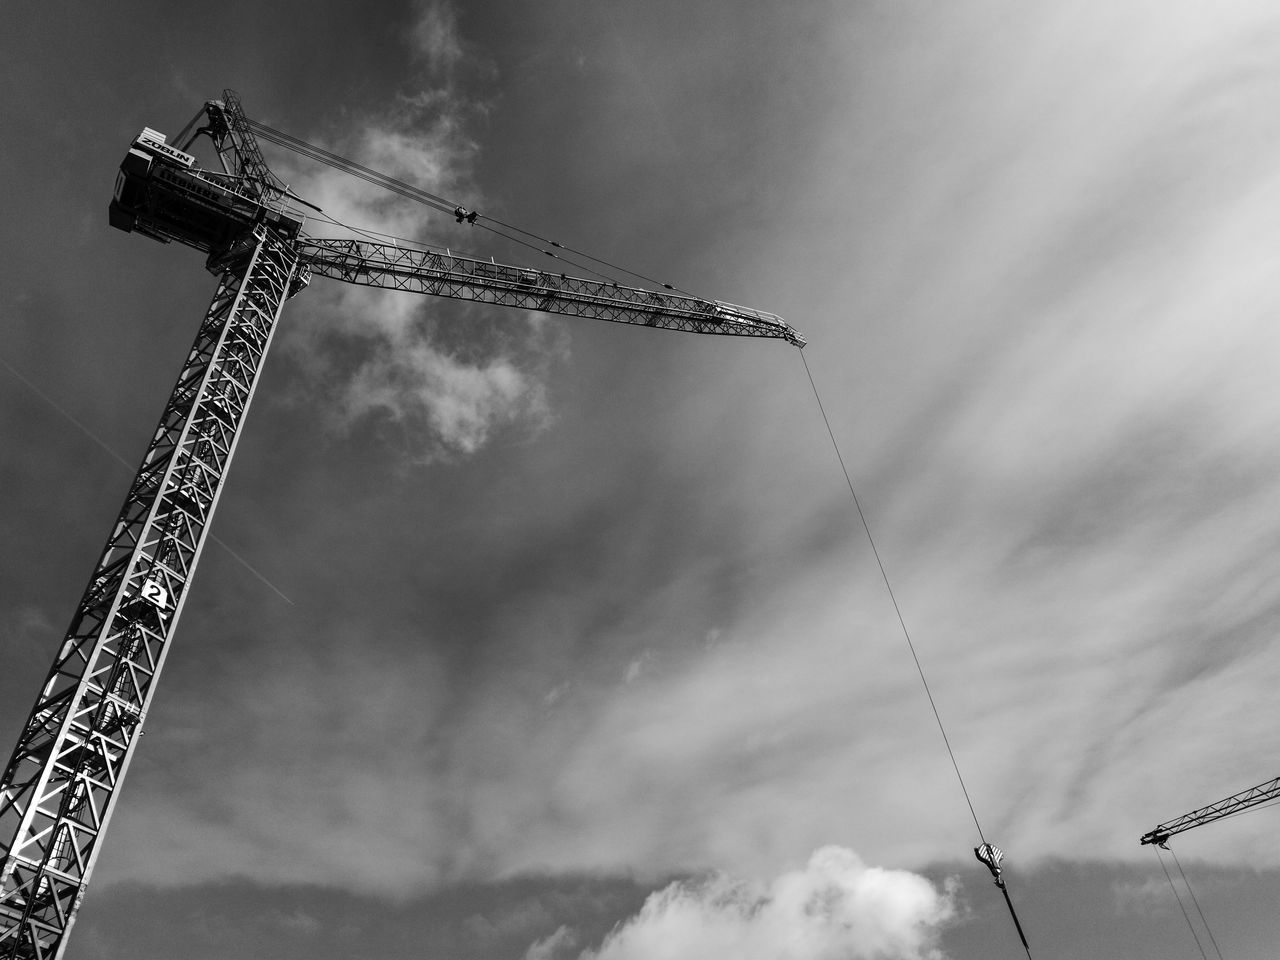 Cloud - Sky Construction Construction Machinery Construction Site Crane Crane - Construction Machinery Day Low Angle View No People Outdoors Sky